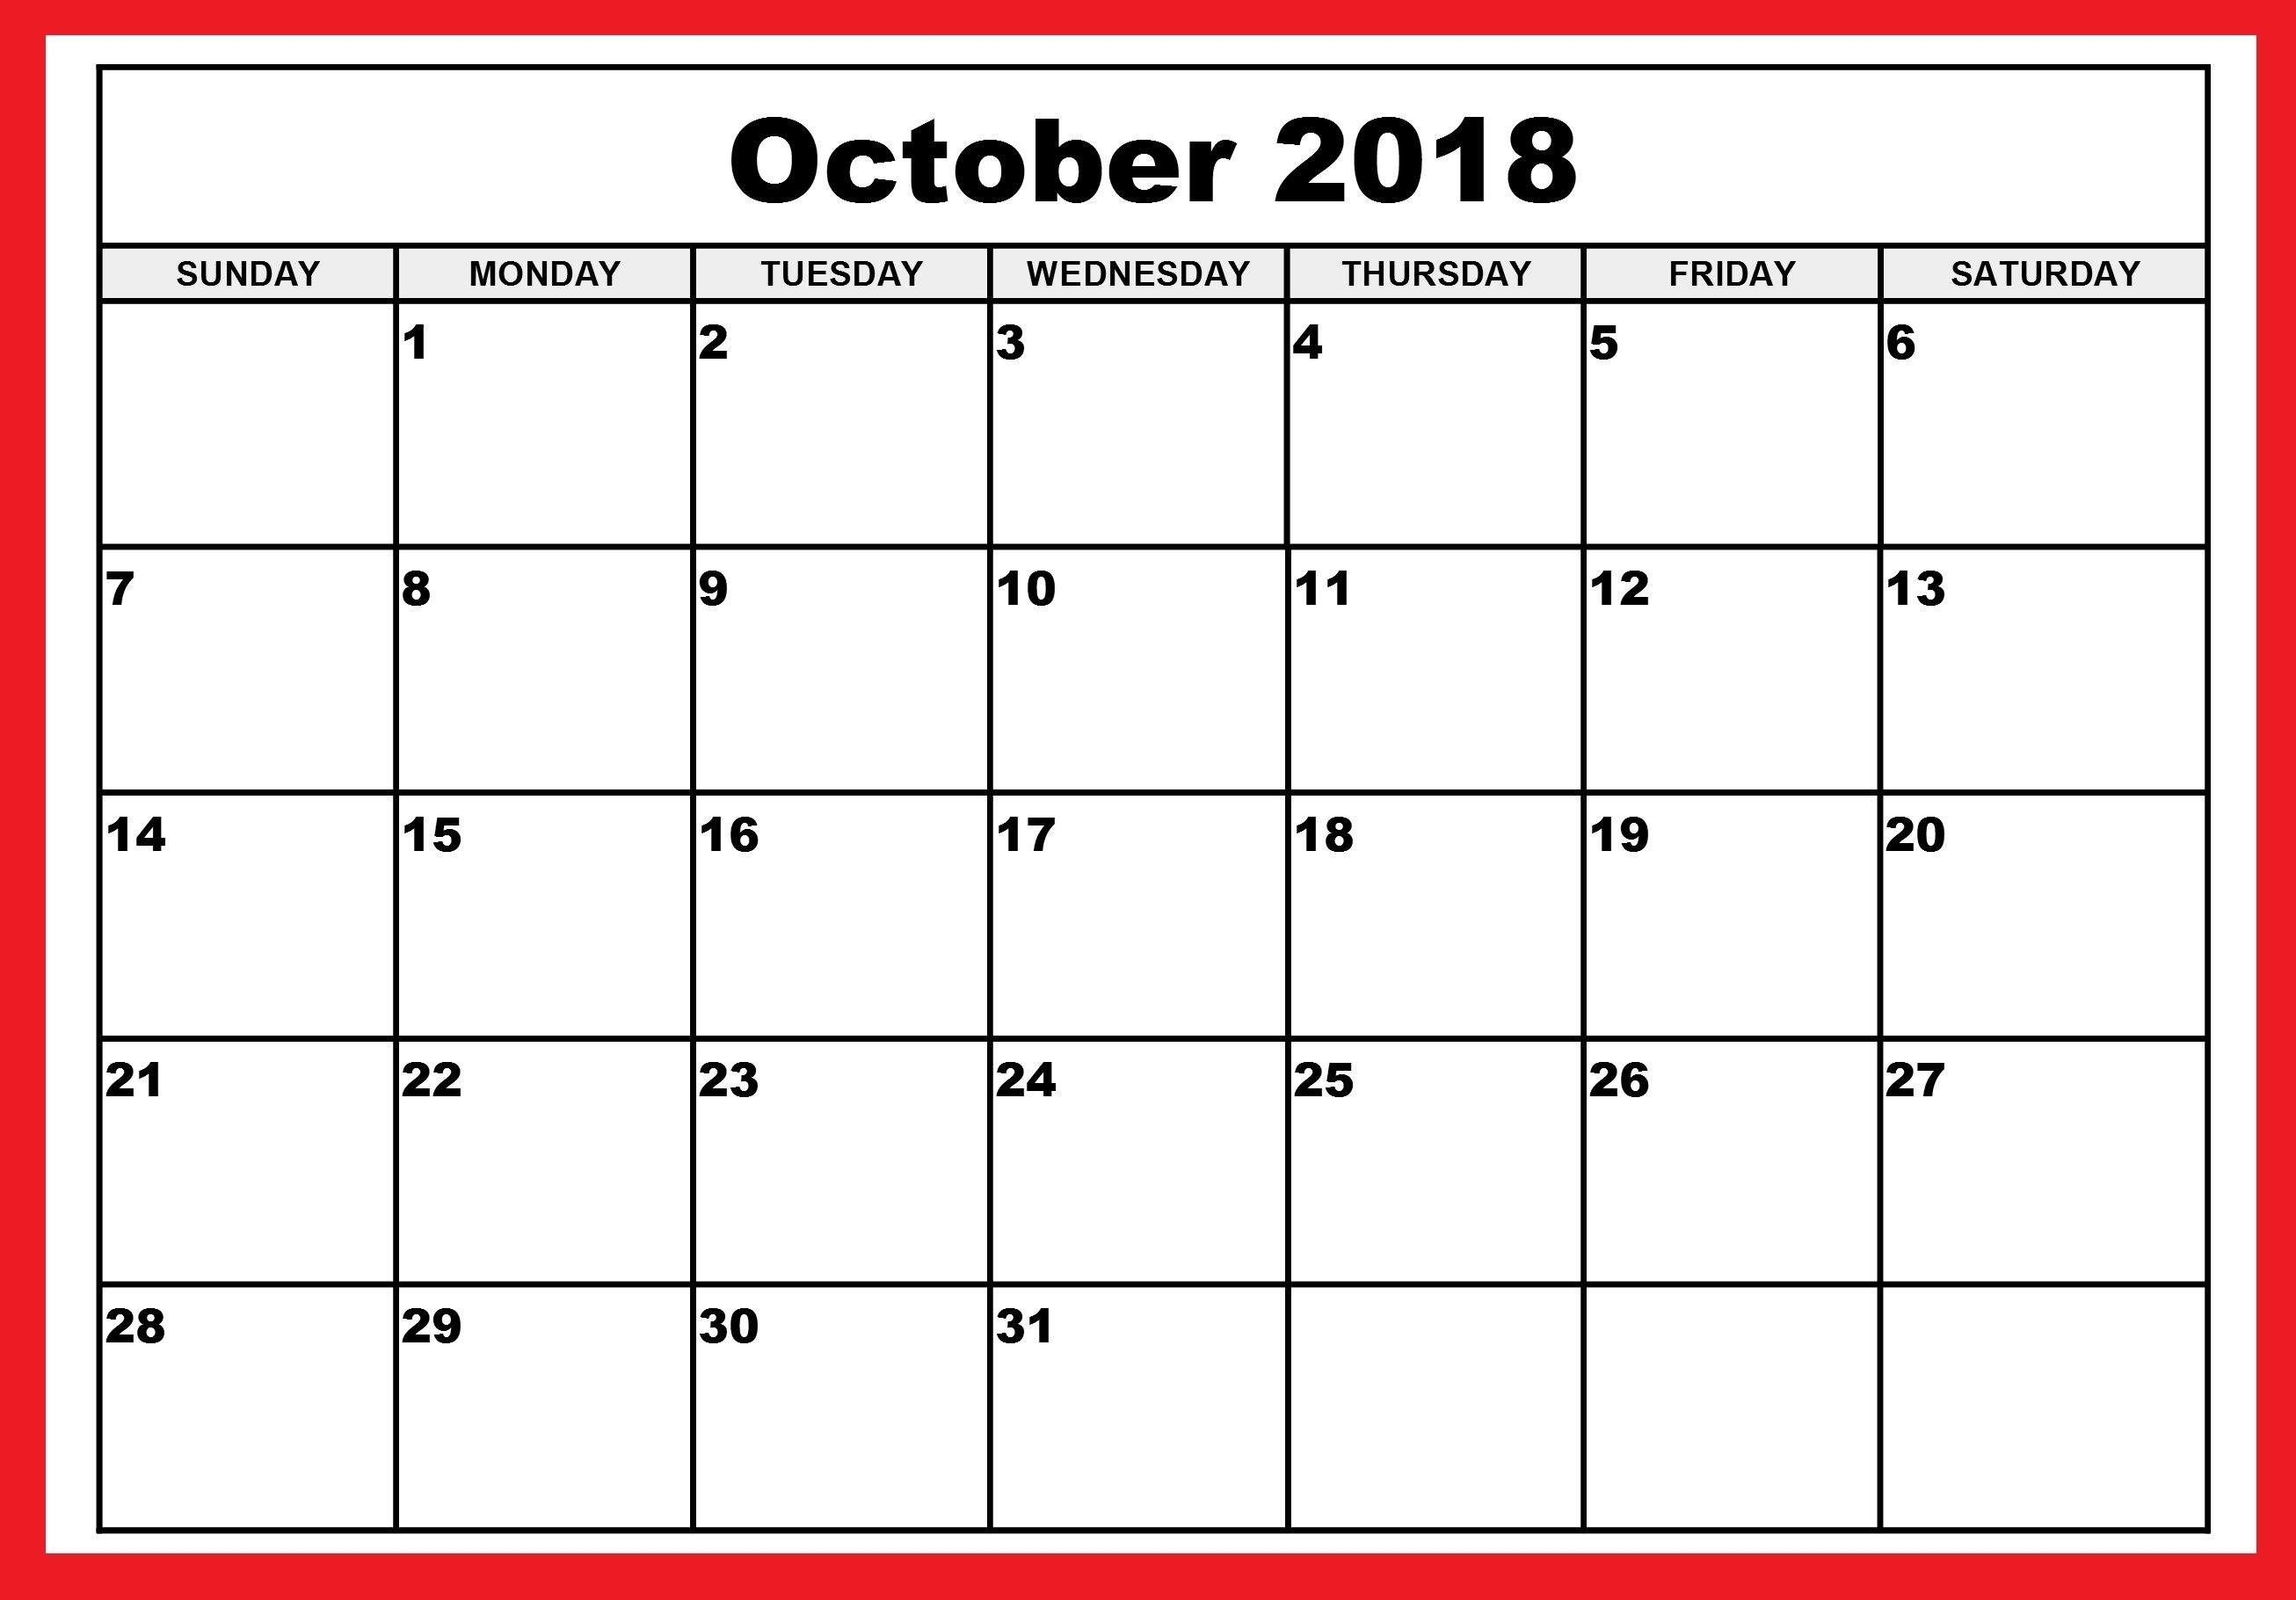 Blank Calendar Template Monday To Friday Only | Template Calendar throughout Blank Calendar Template Monday To Friday Only